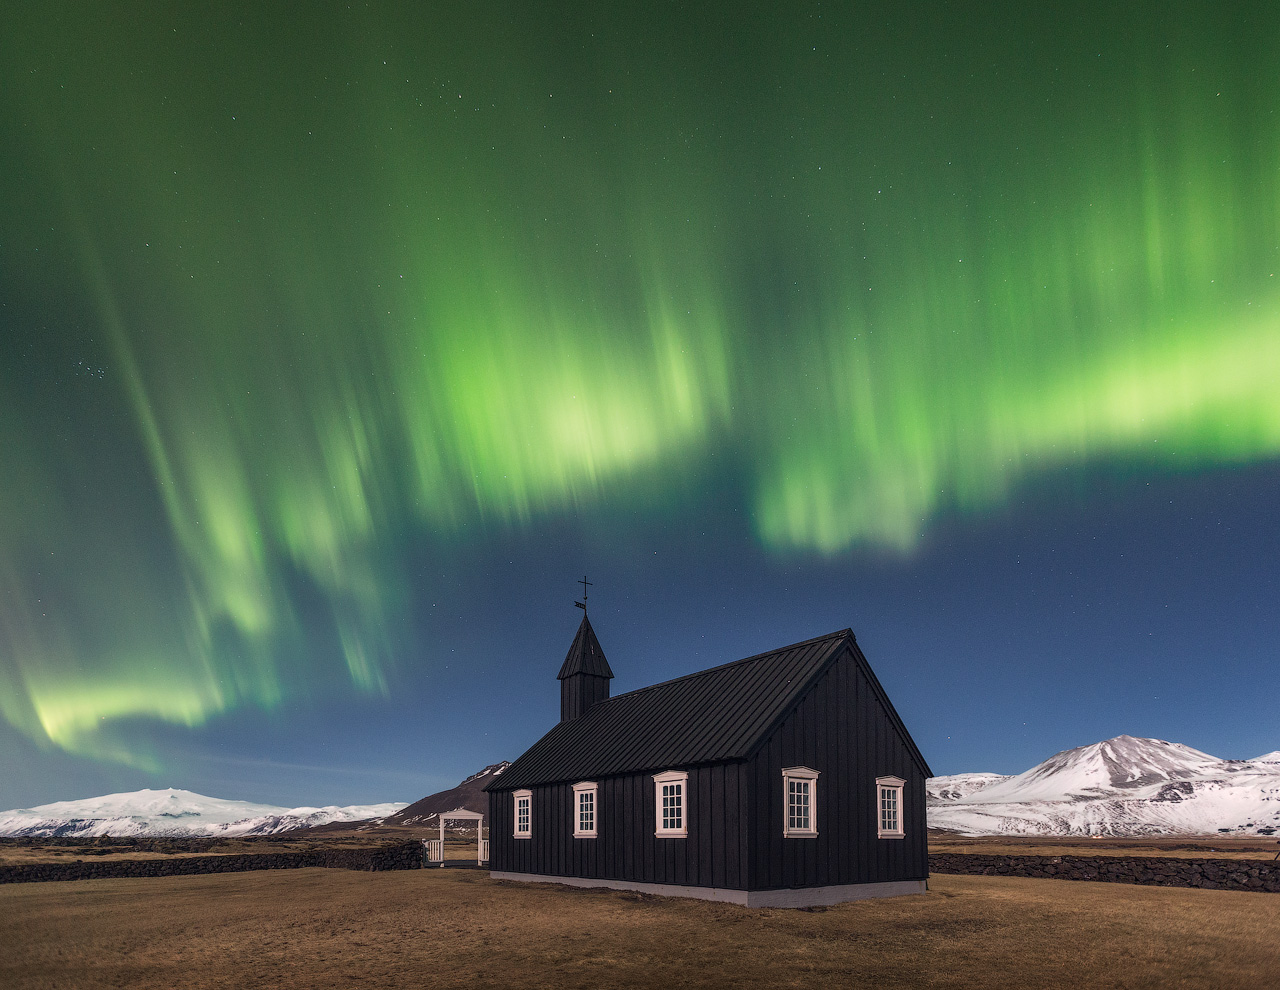 During the autumn months in Iceland, it is possible to see the Northern Lights as they are in this picture, dancing vibrantly behind the black church at Búðir.